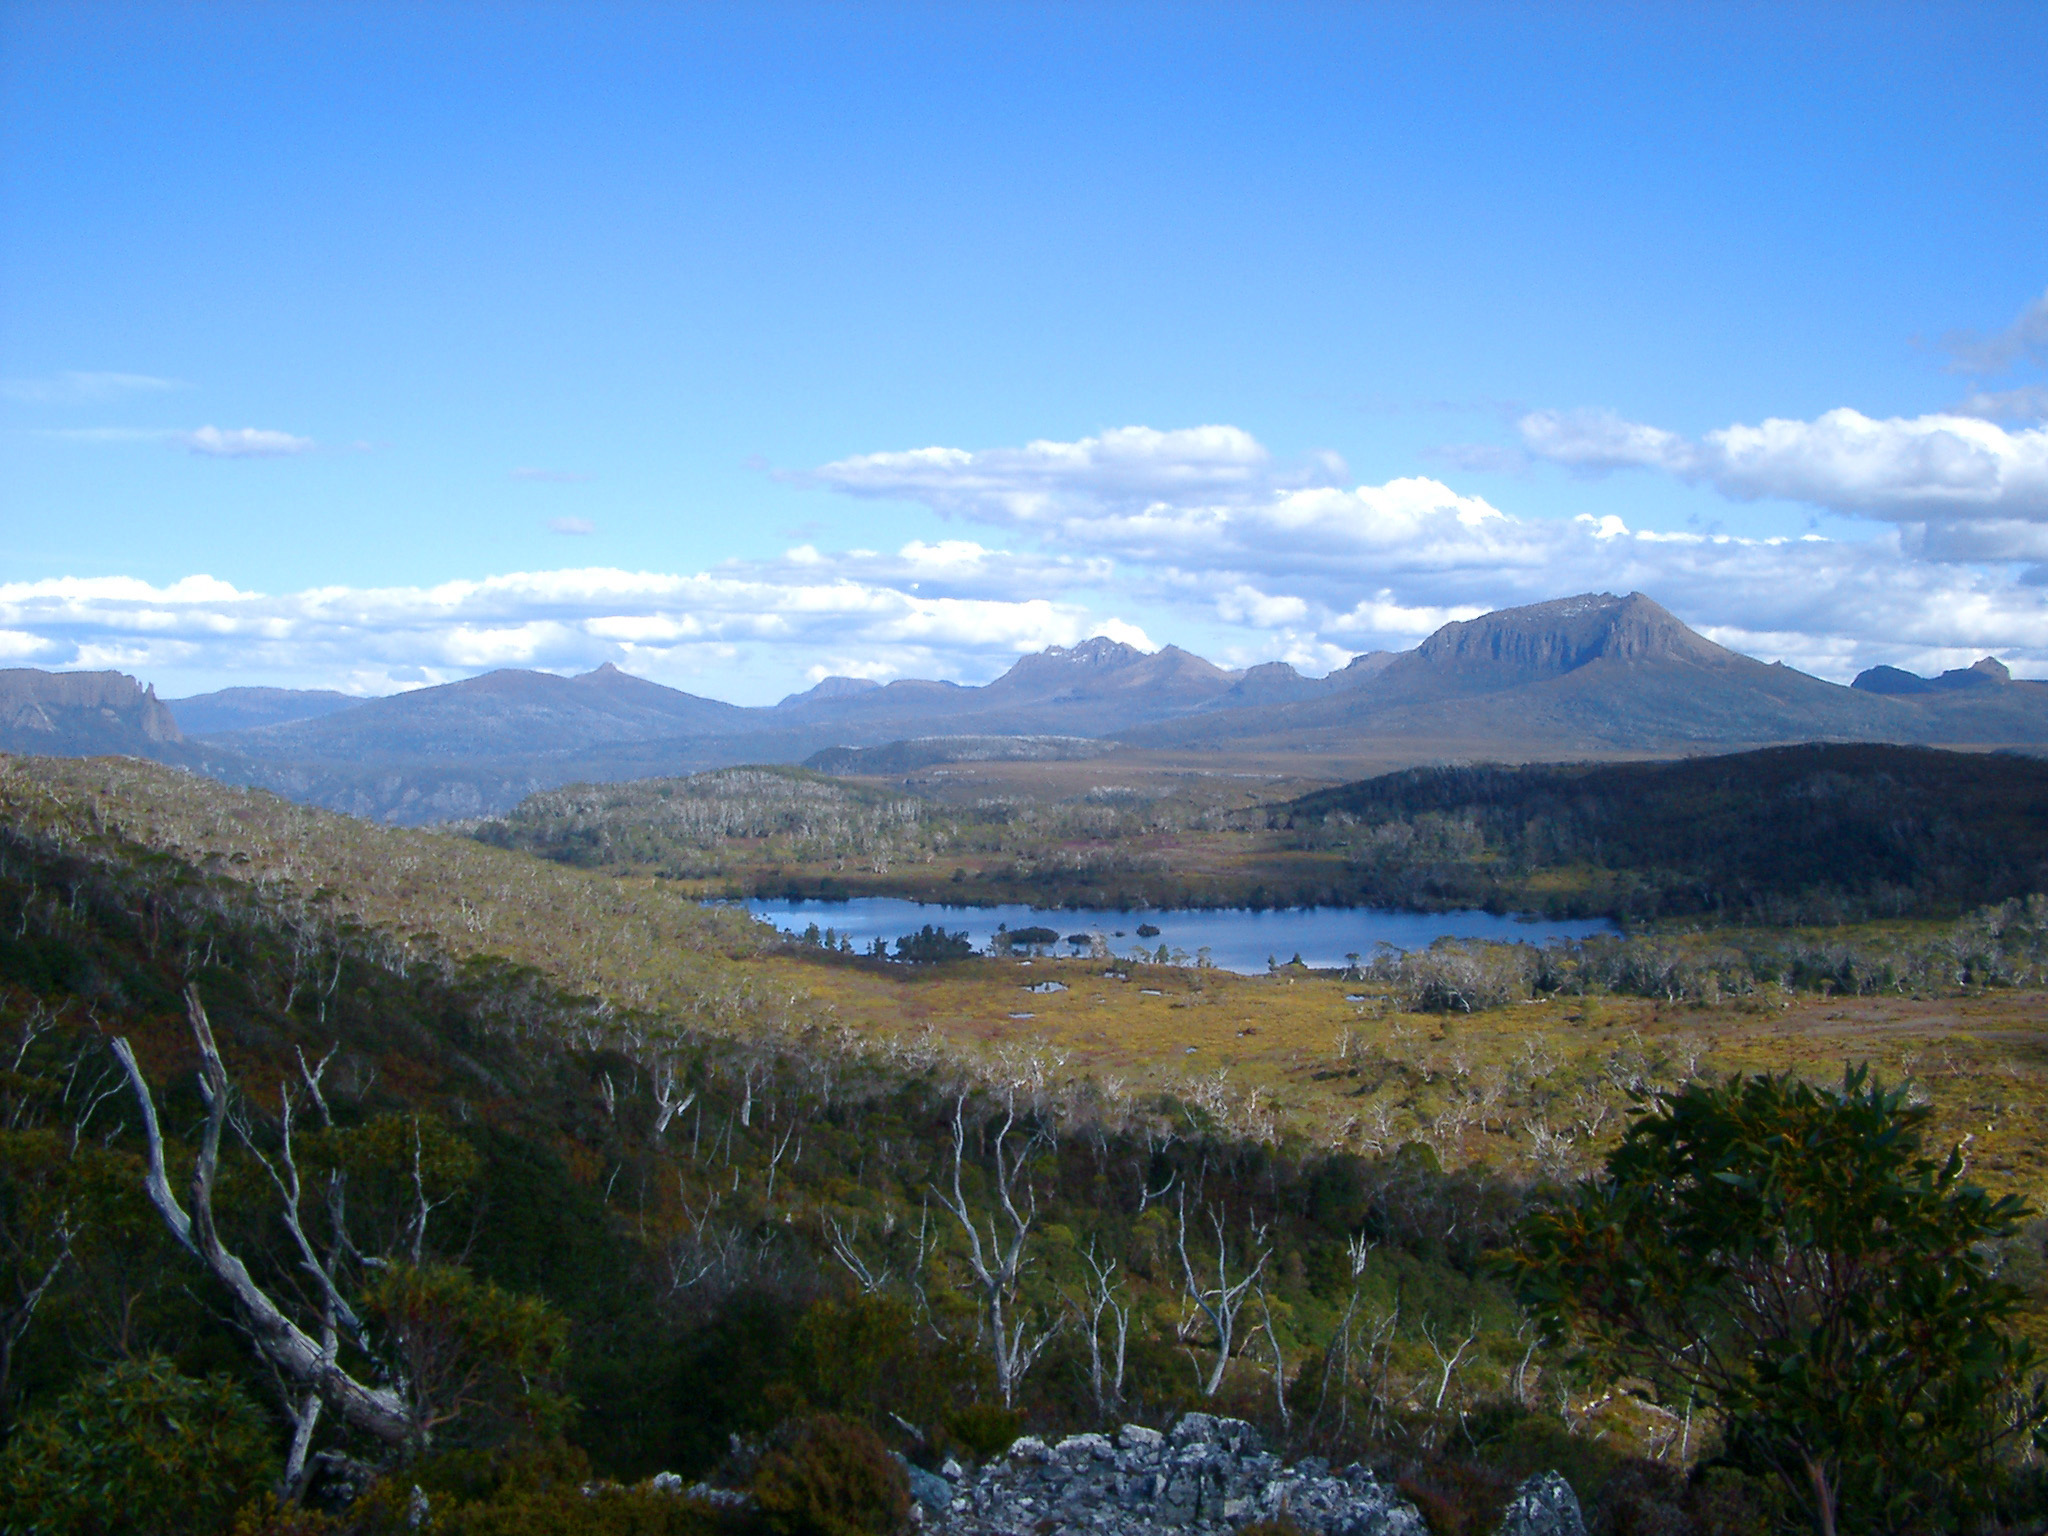 Scenic view of Lake Windermere, Tasmania from an overland track with distant mountain ranges